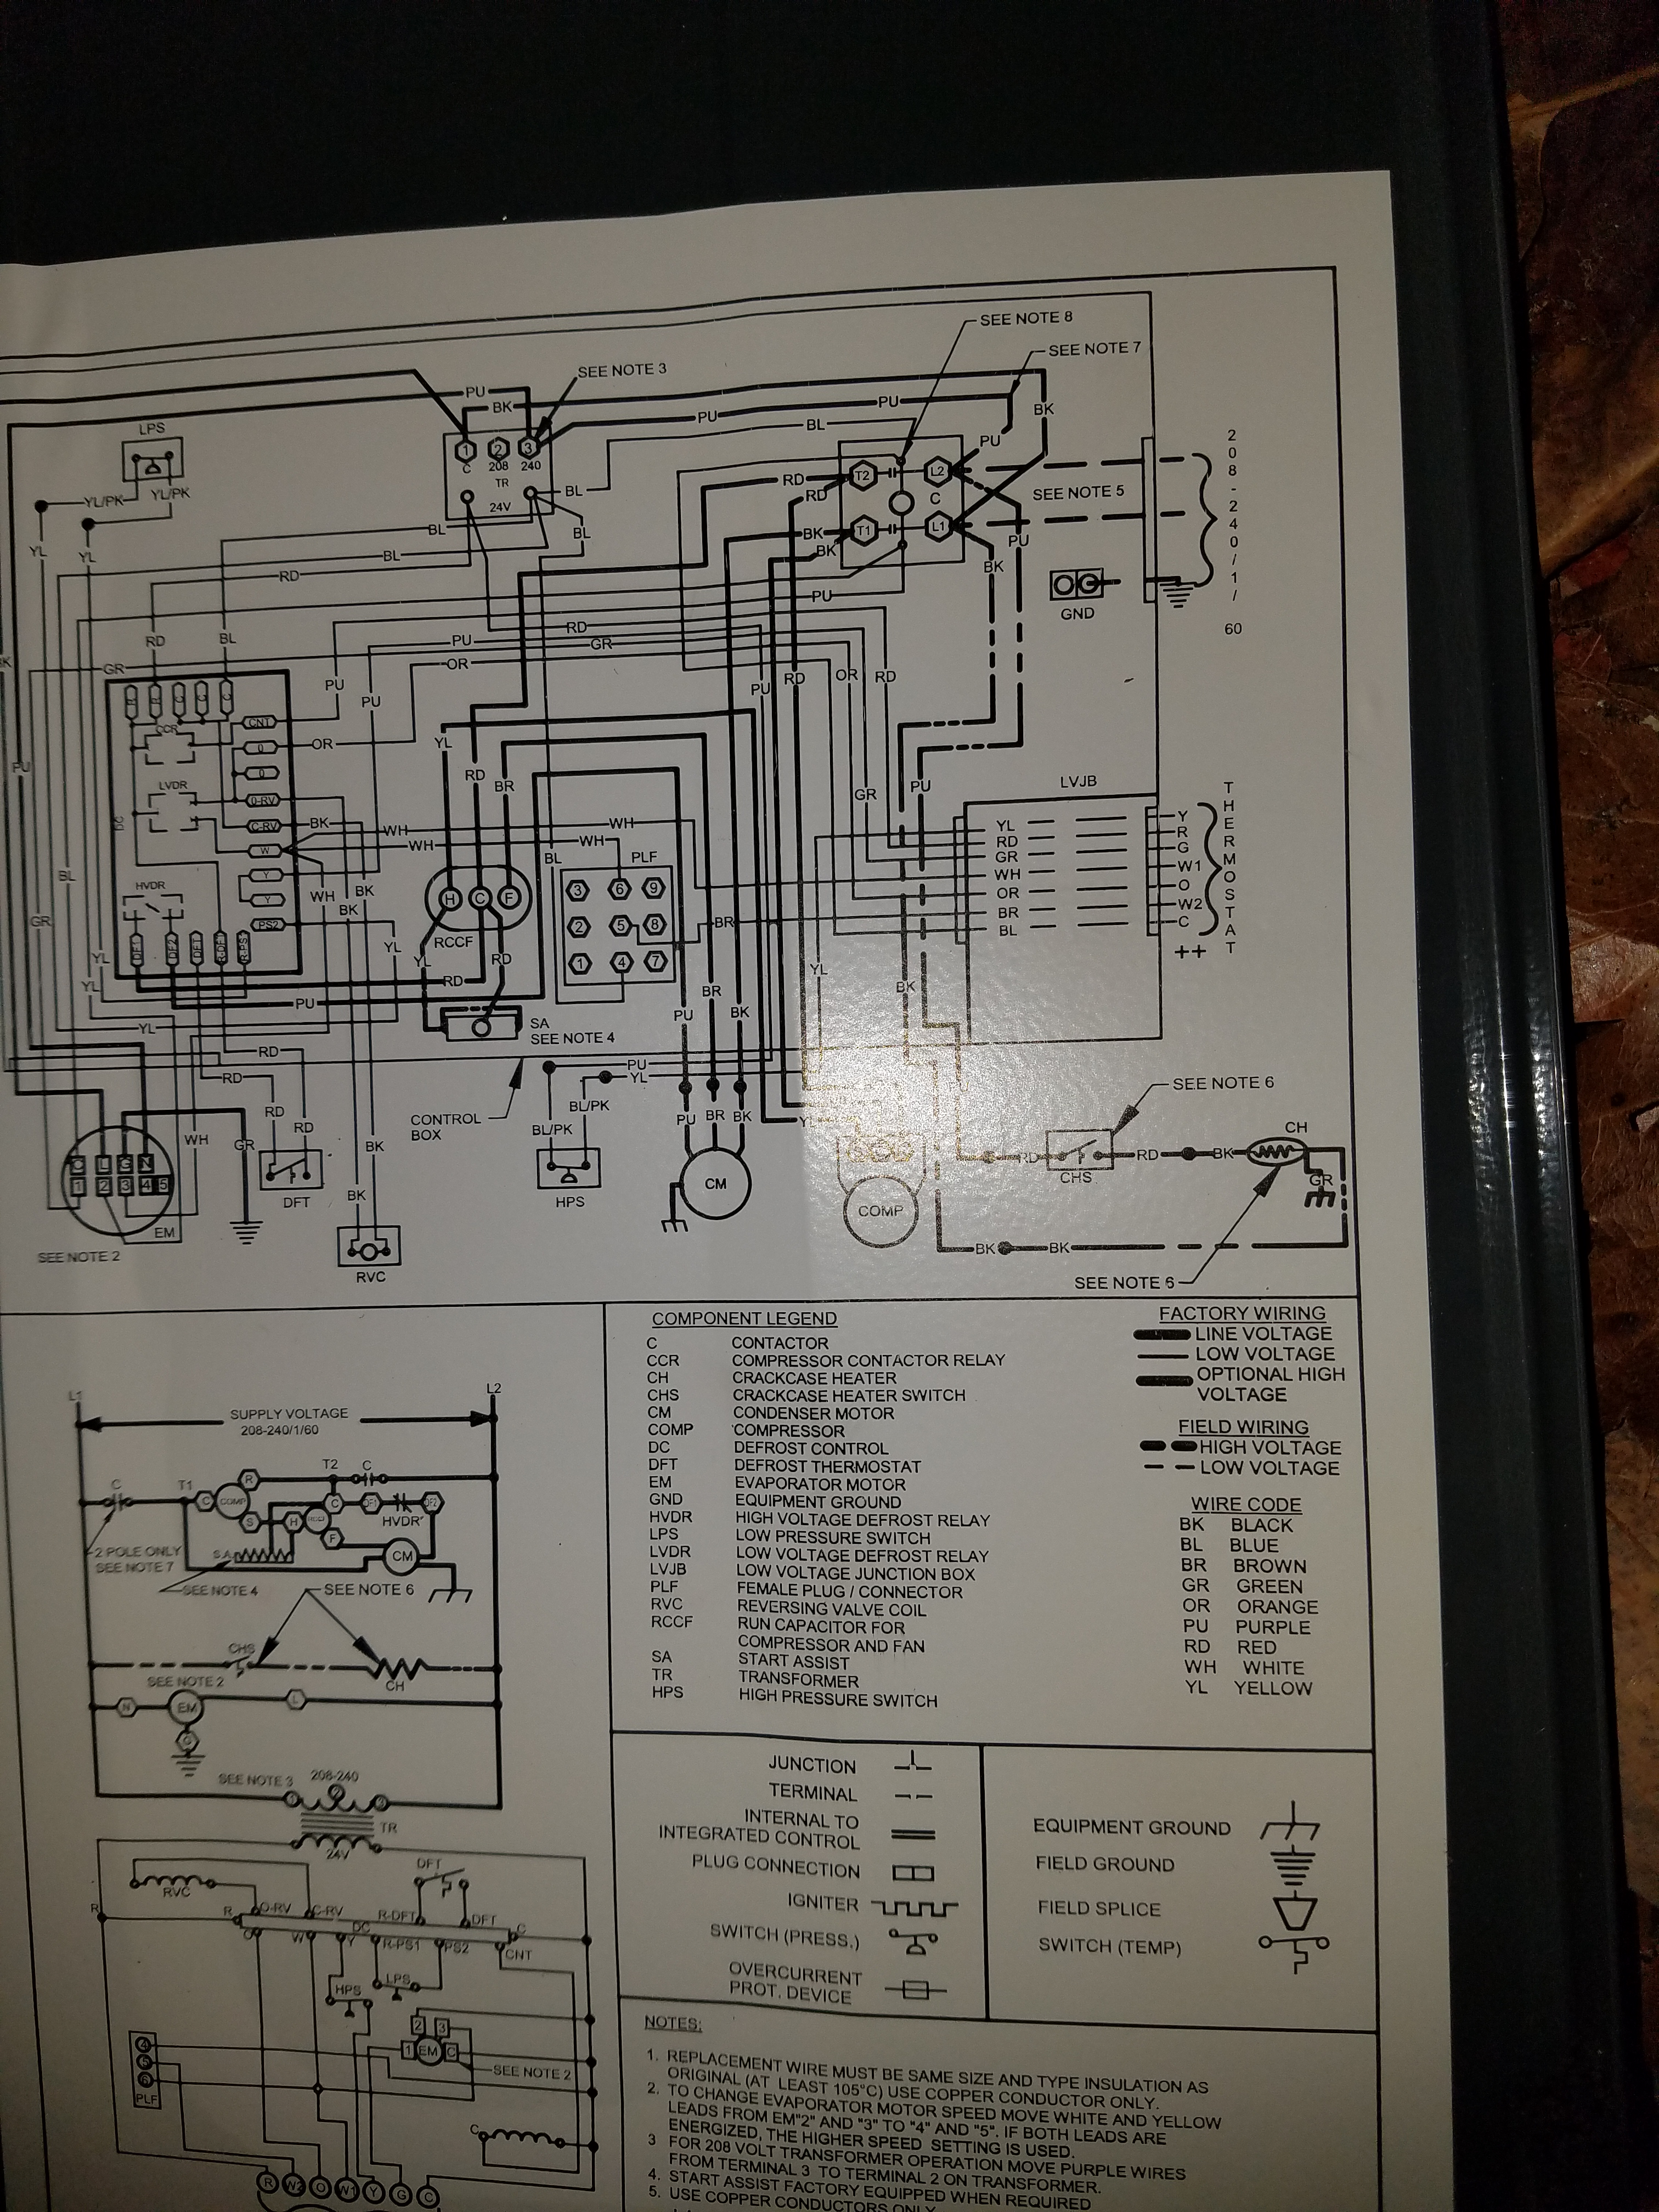 need help wiring goodman package unit gph1442 to hunter 44760 thermo rh  doityourself com